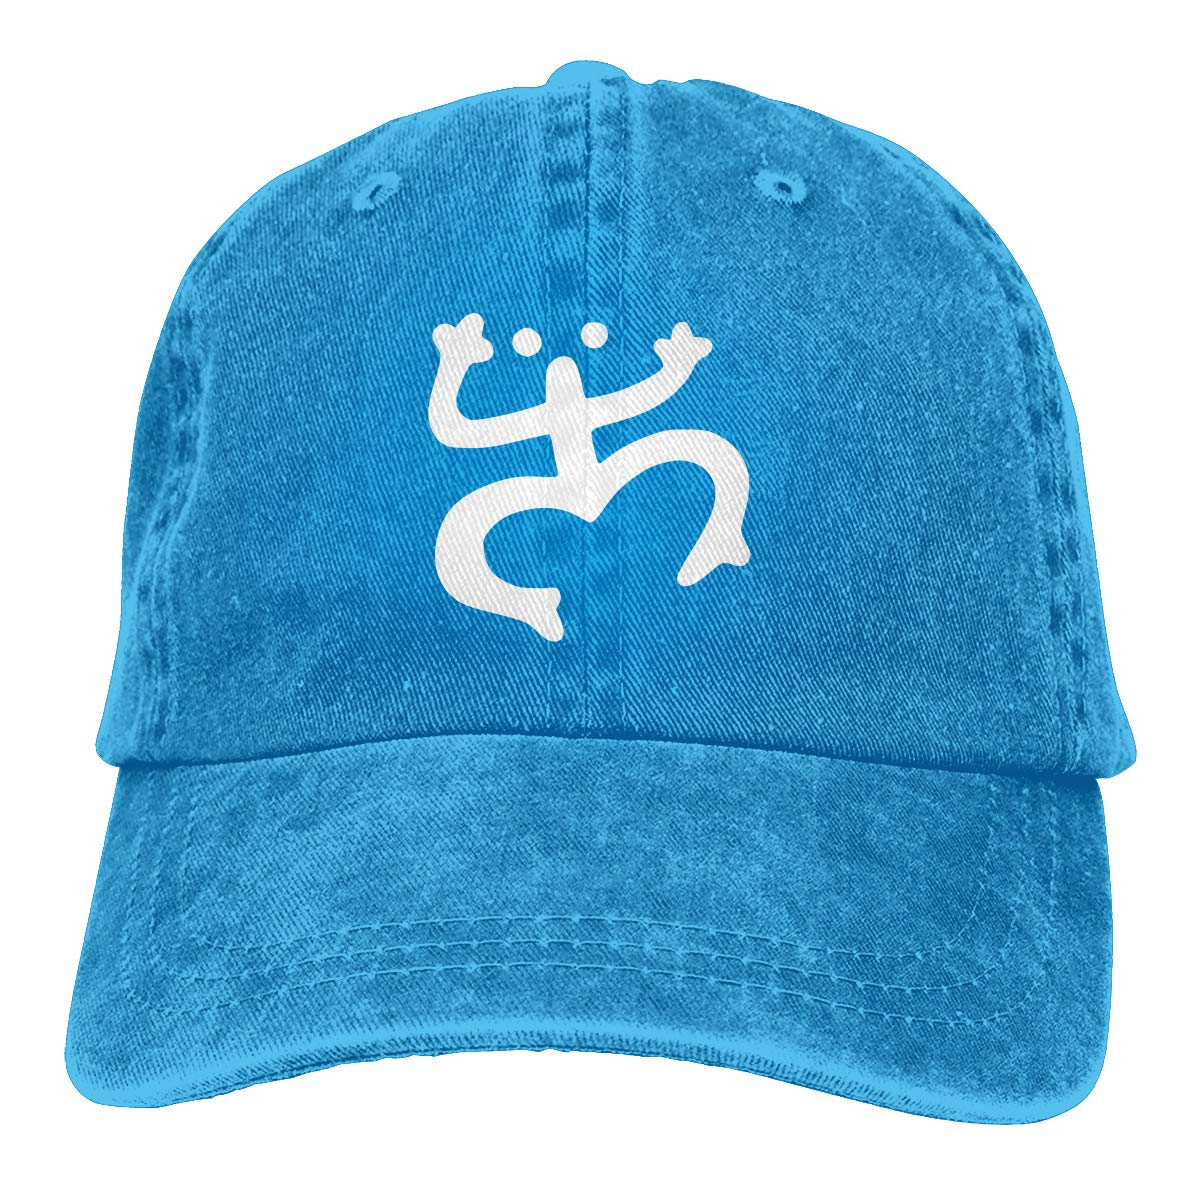 Coqui Puerto Rico Taino Fashion Adjustable Cowboy Cap Denim Hat for Women and Men